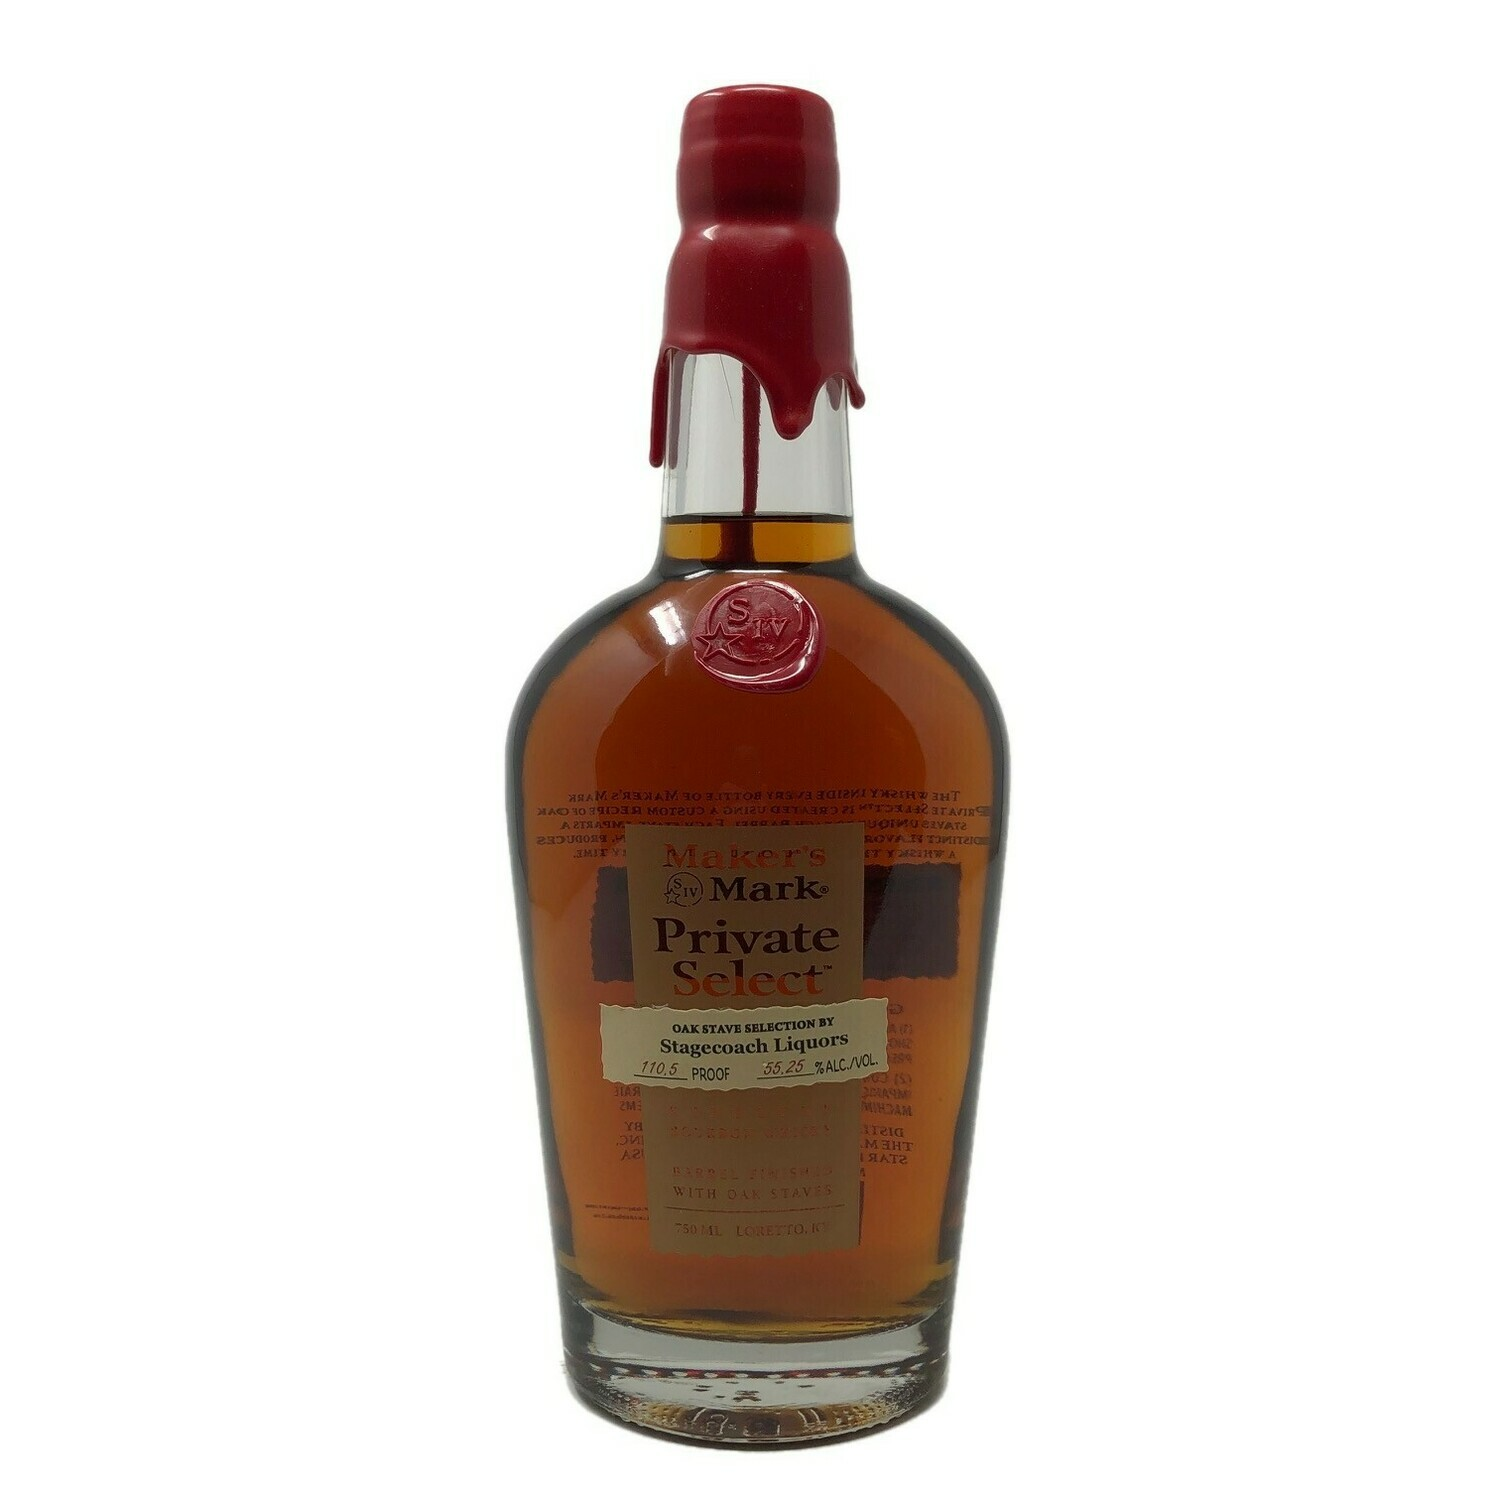 Maker's Mark Stagecoach Liquor Private Select Kentucky Bourbon Whisky